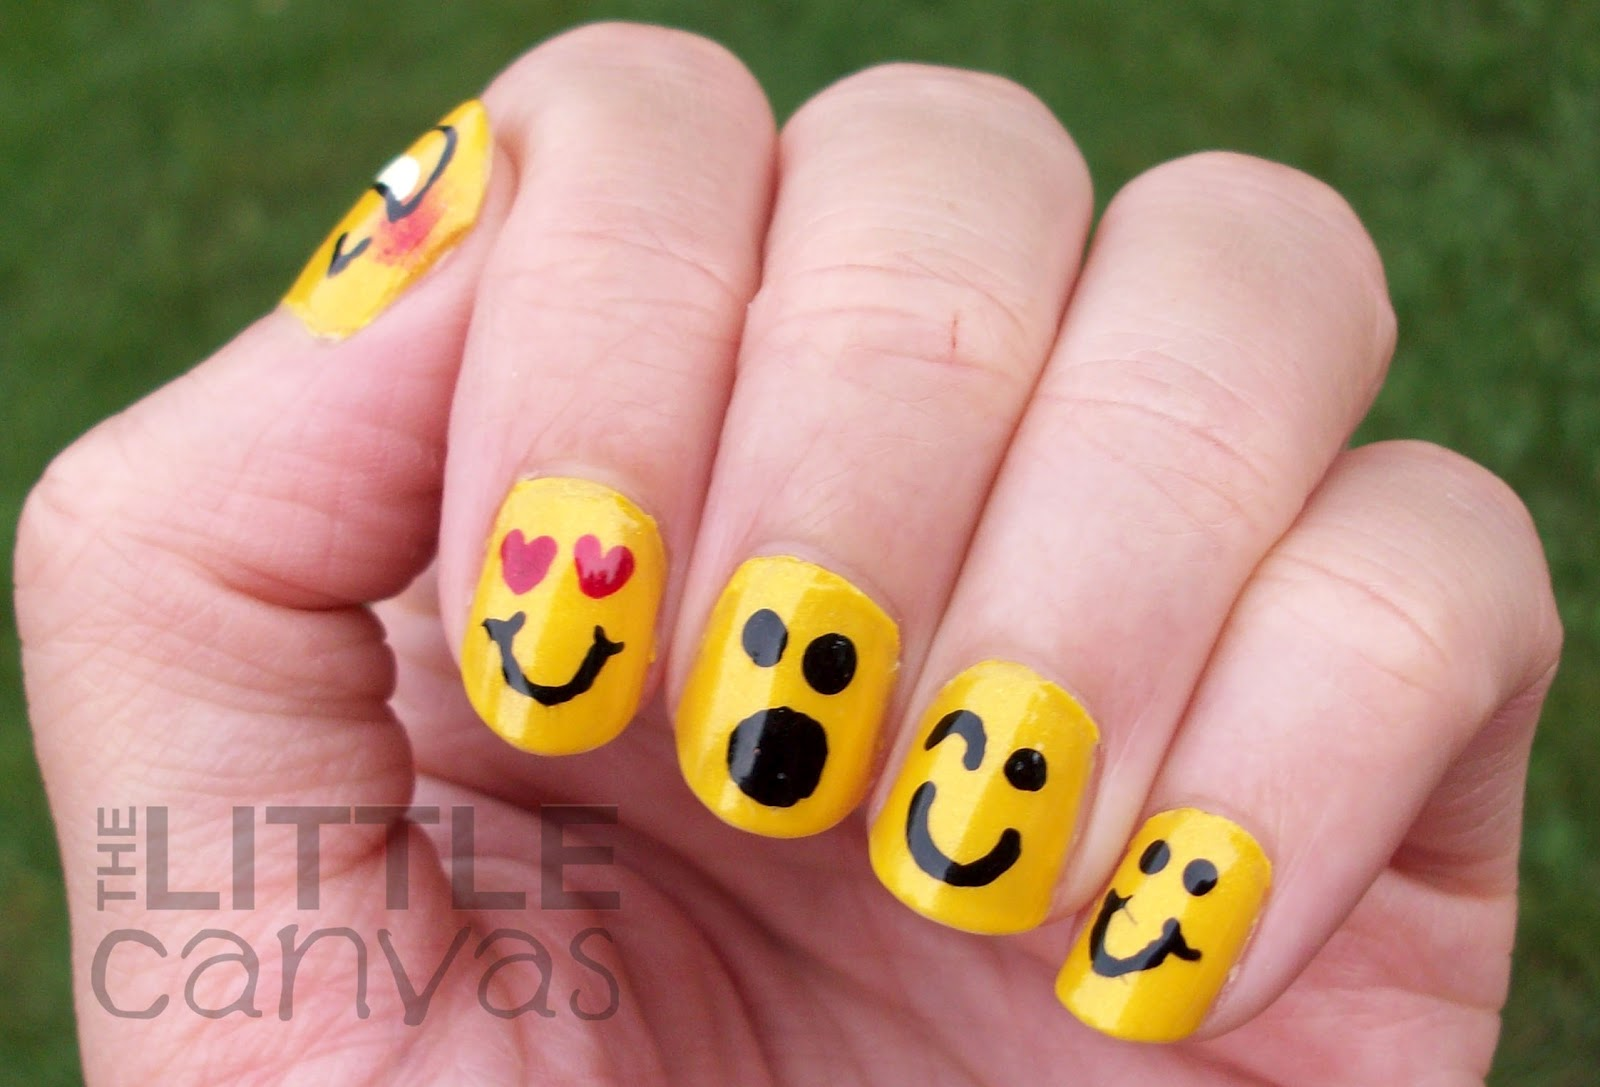 31 Day Challenge Day 3 Yellow Nails Emoticons The Little Canvas